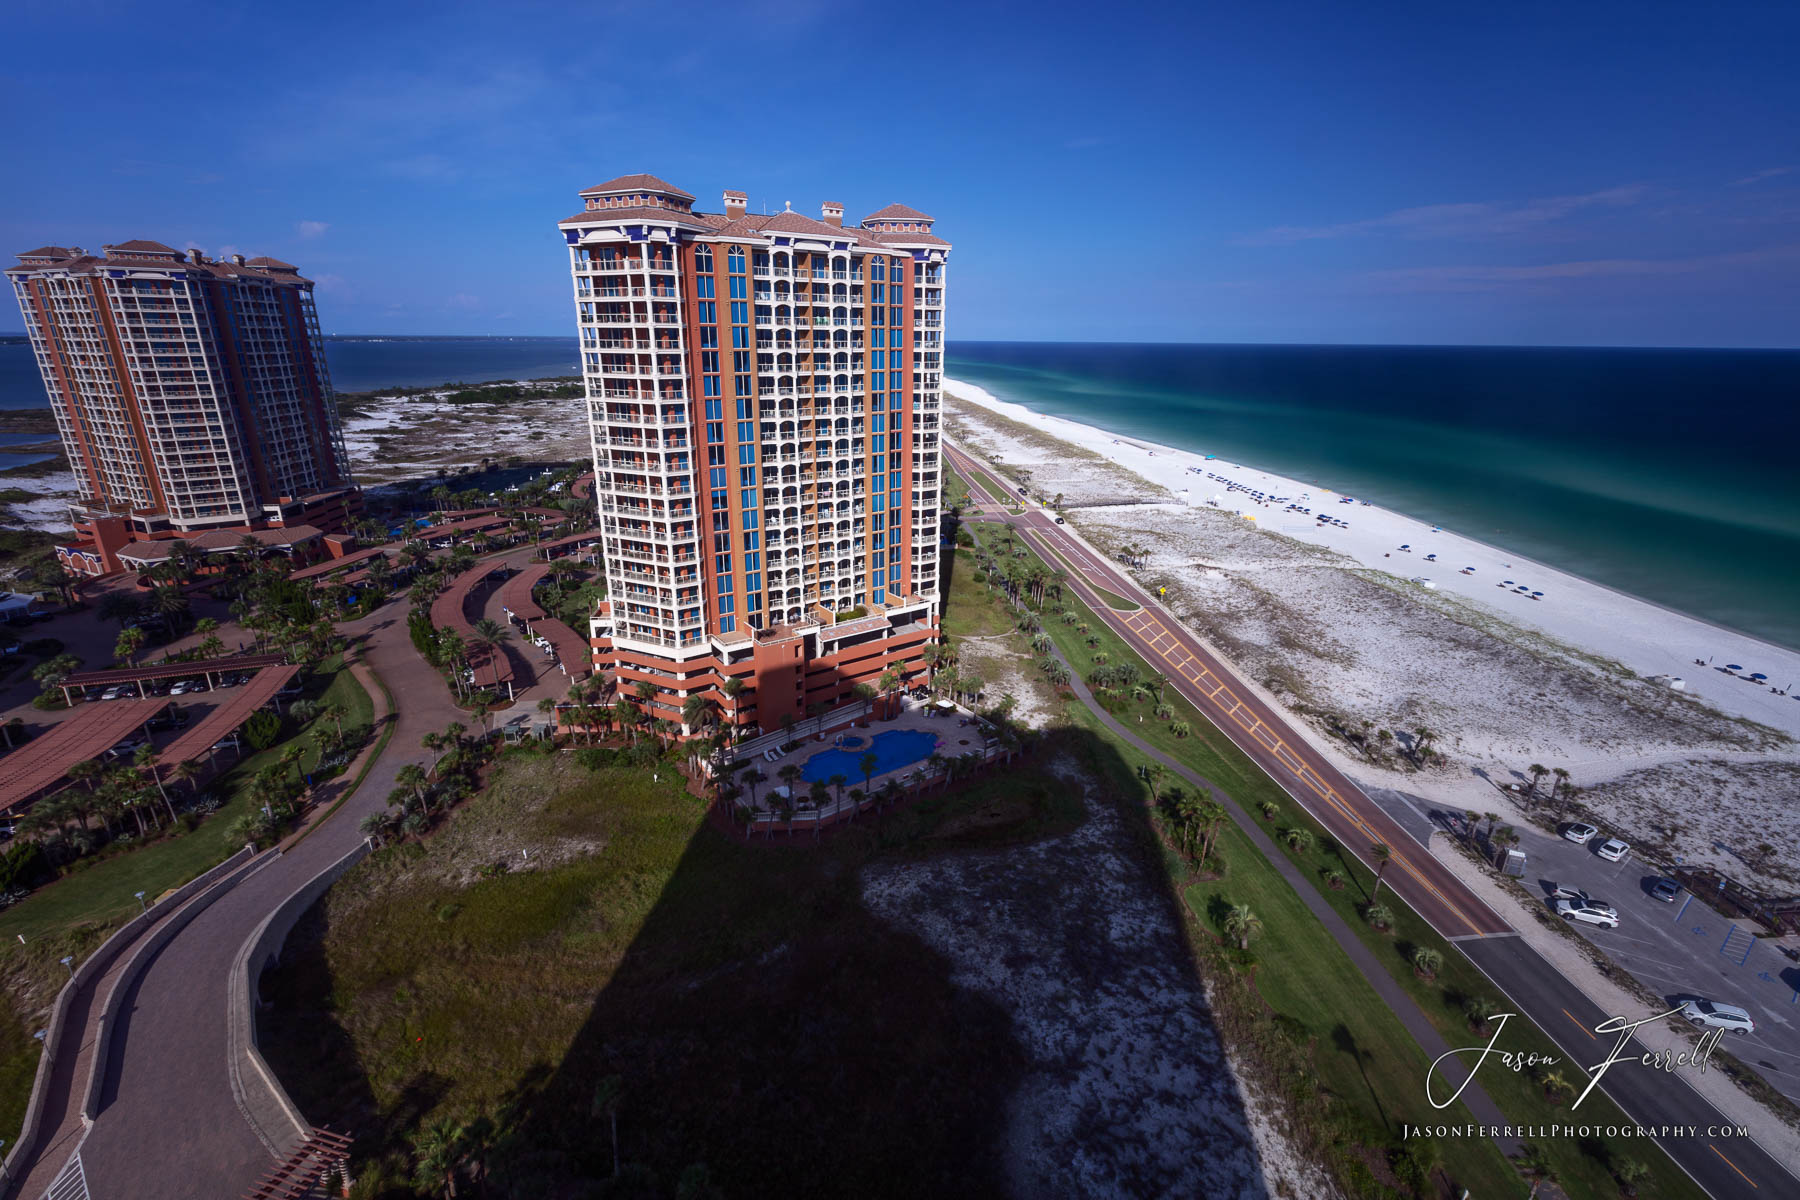 portofino island resort, beach, towers, ocean, water, gulf of mexico, photo